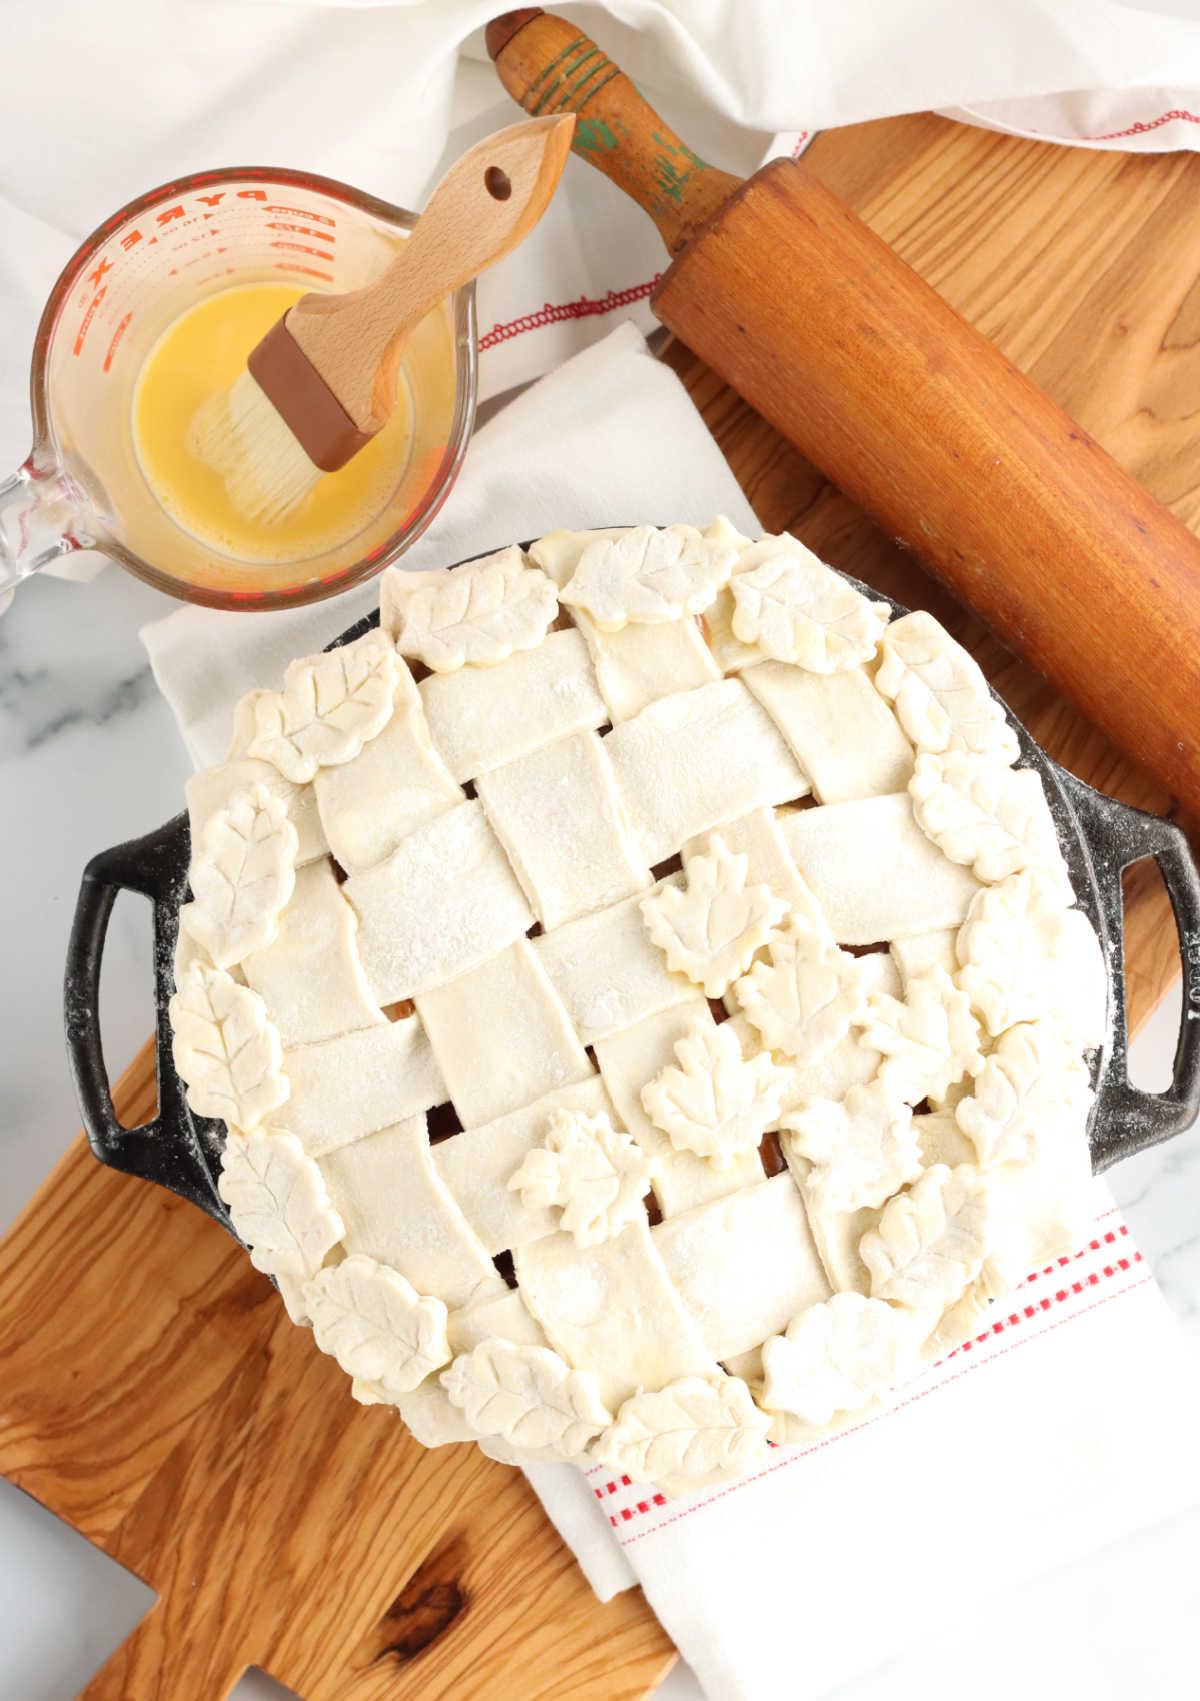 unbaked pie with lattice crust in cast iron pie pan on wooden cutting board.